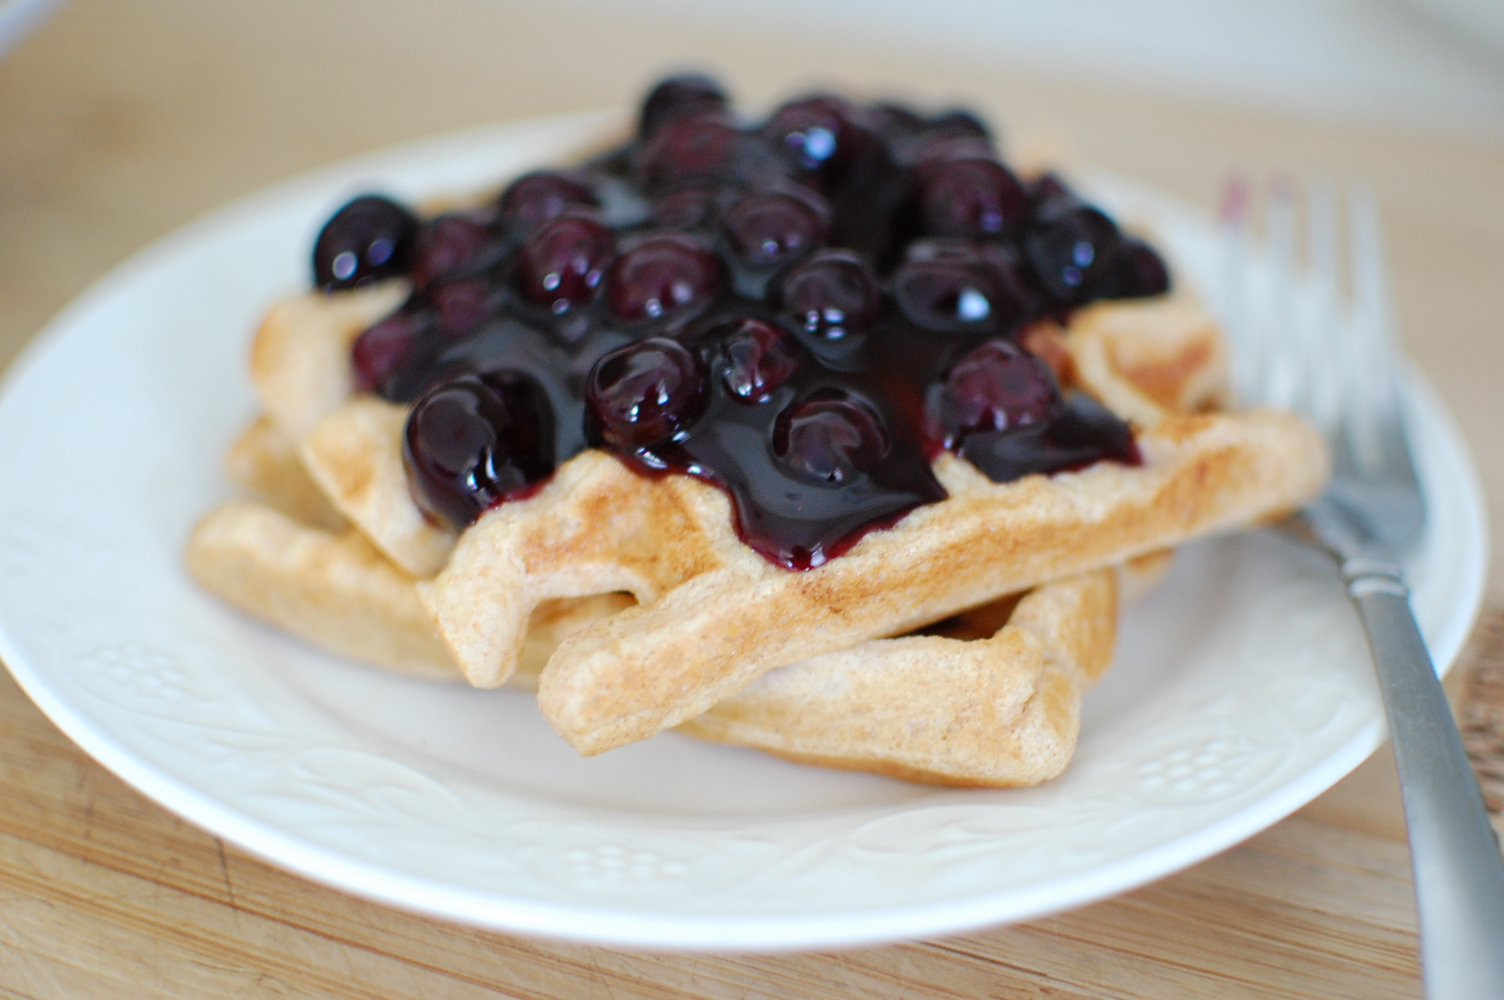 Food Fun Amp Life Whole Grain Waffles With Blueberry Syrup